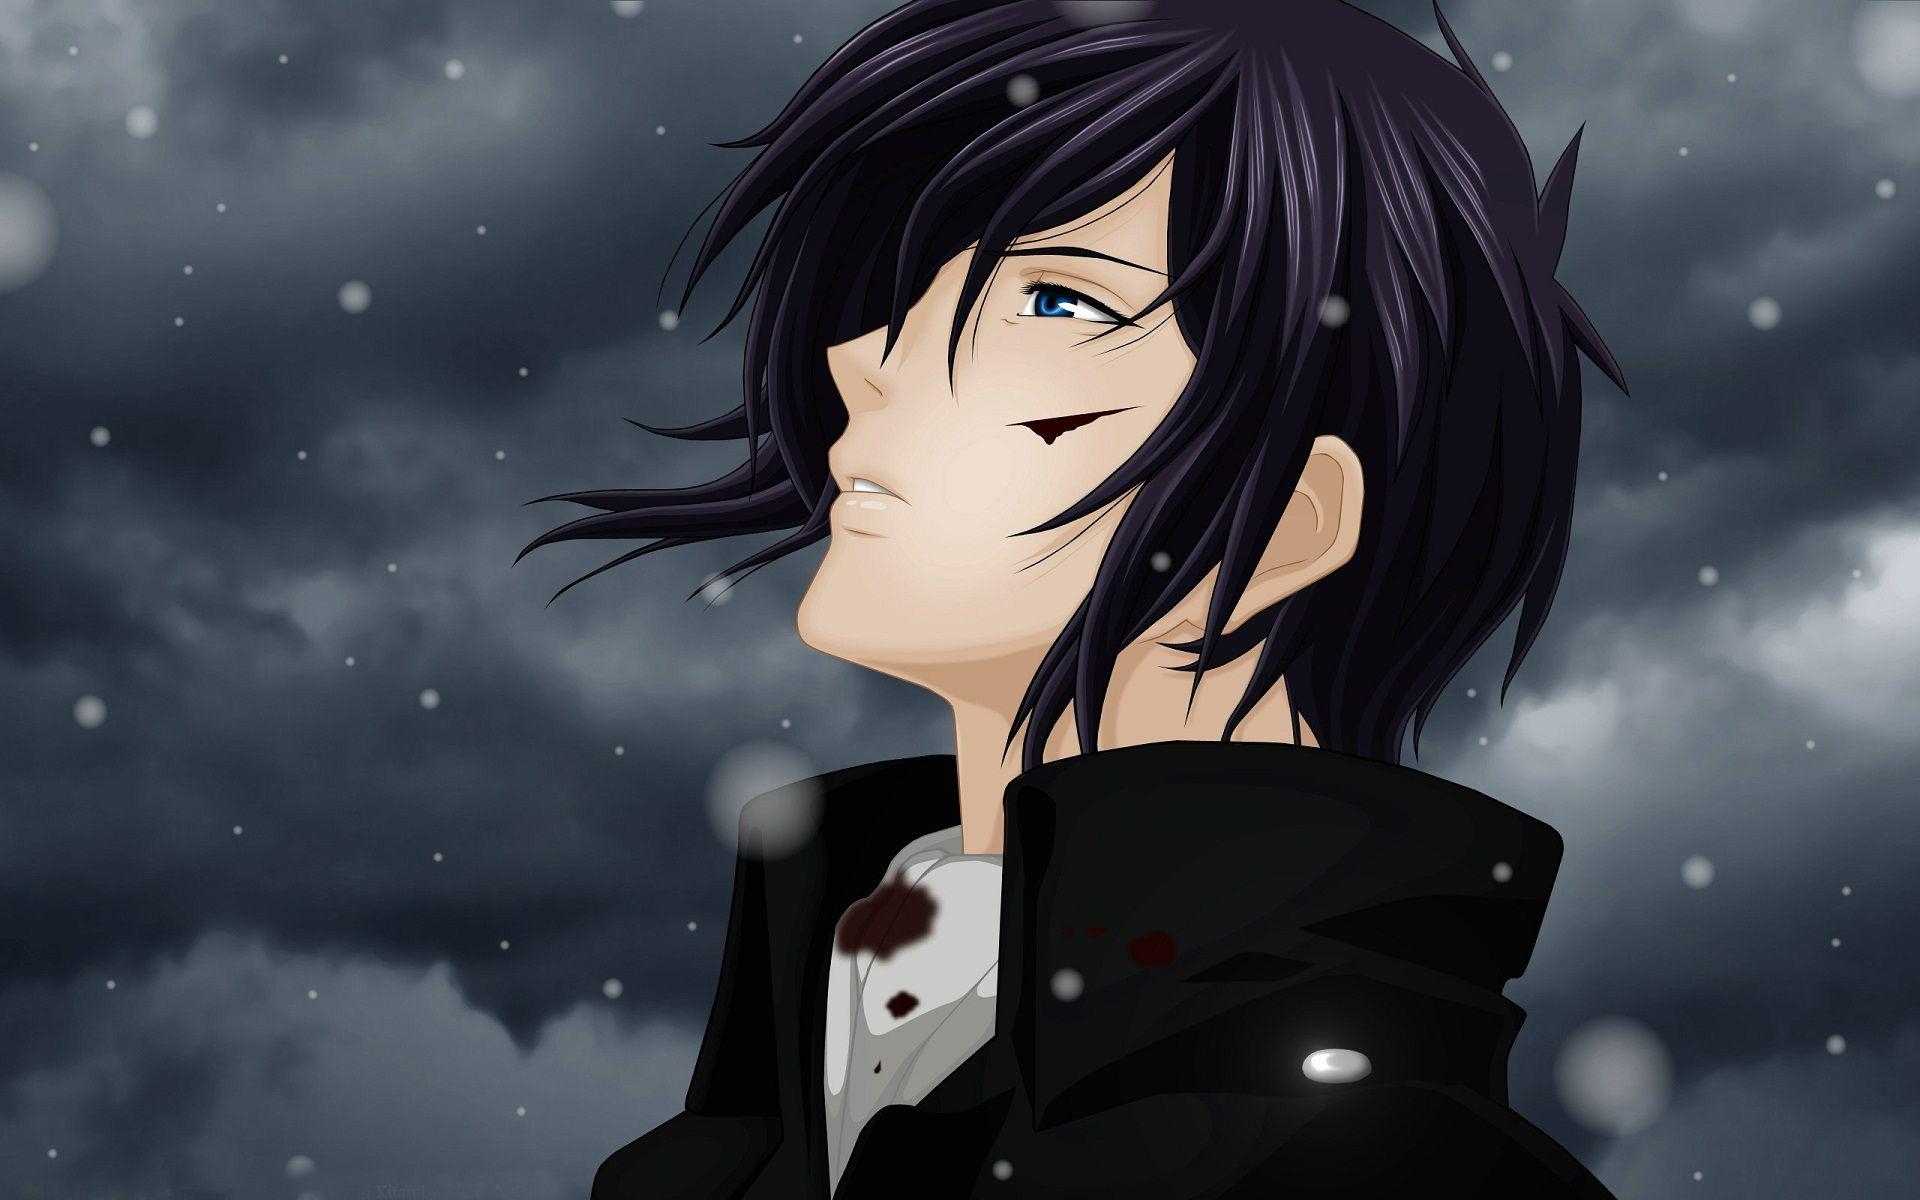 Hd sad boy anime snow handsome dark clouds wallpaper manga